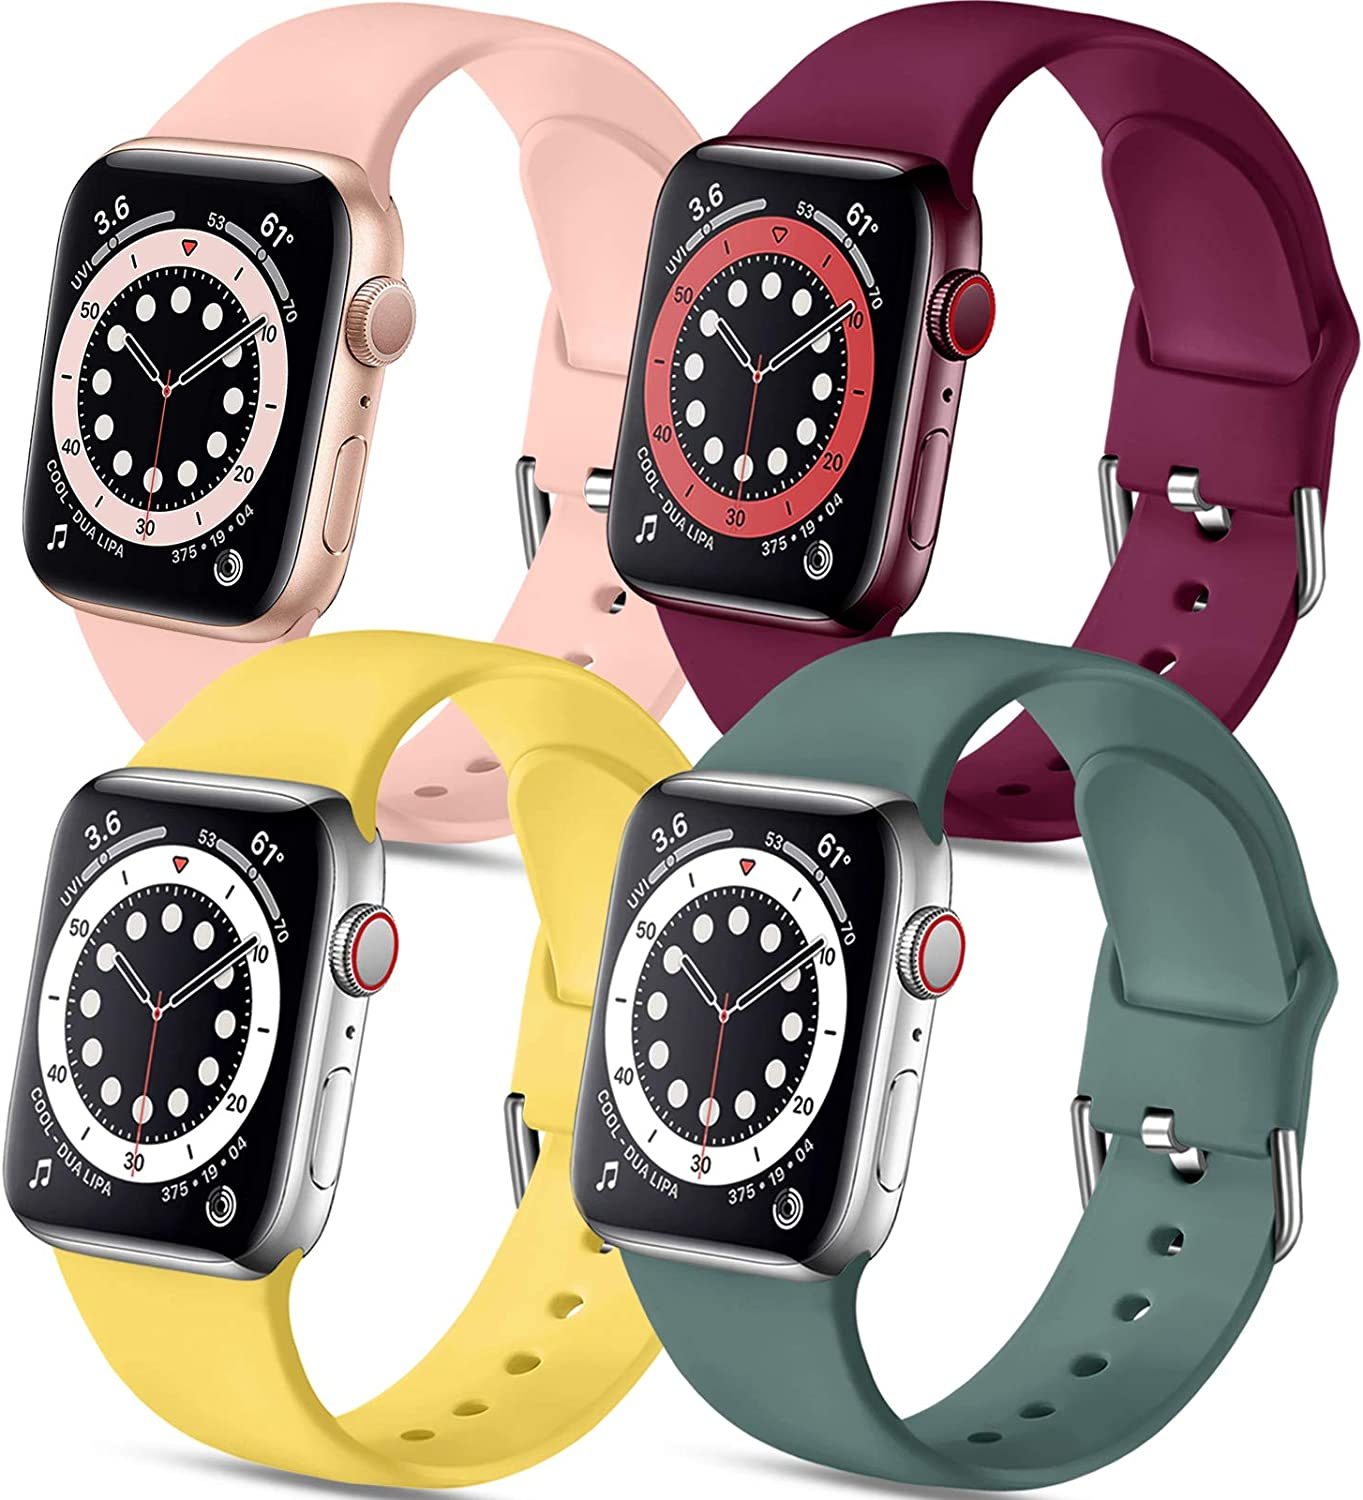 Muranne 4 Pack Sport Bands Compatible with Apple Watch 40mm 38mm for Women Men, Soft Silicone Replacement Wrist Strap Compatible with iWatch SE Series 6 Series 5 4 3 2 1 All Models